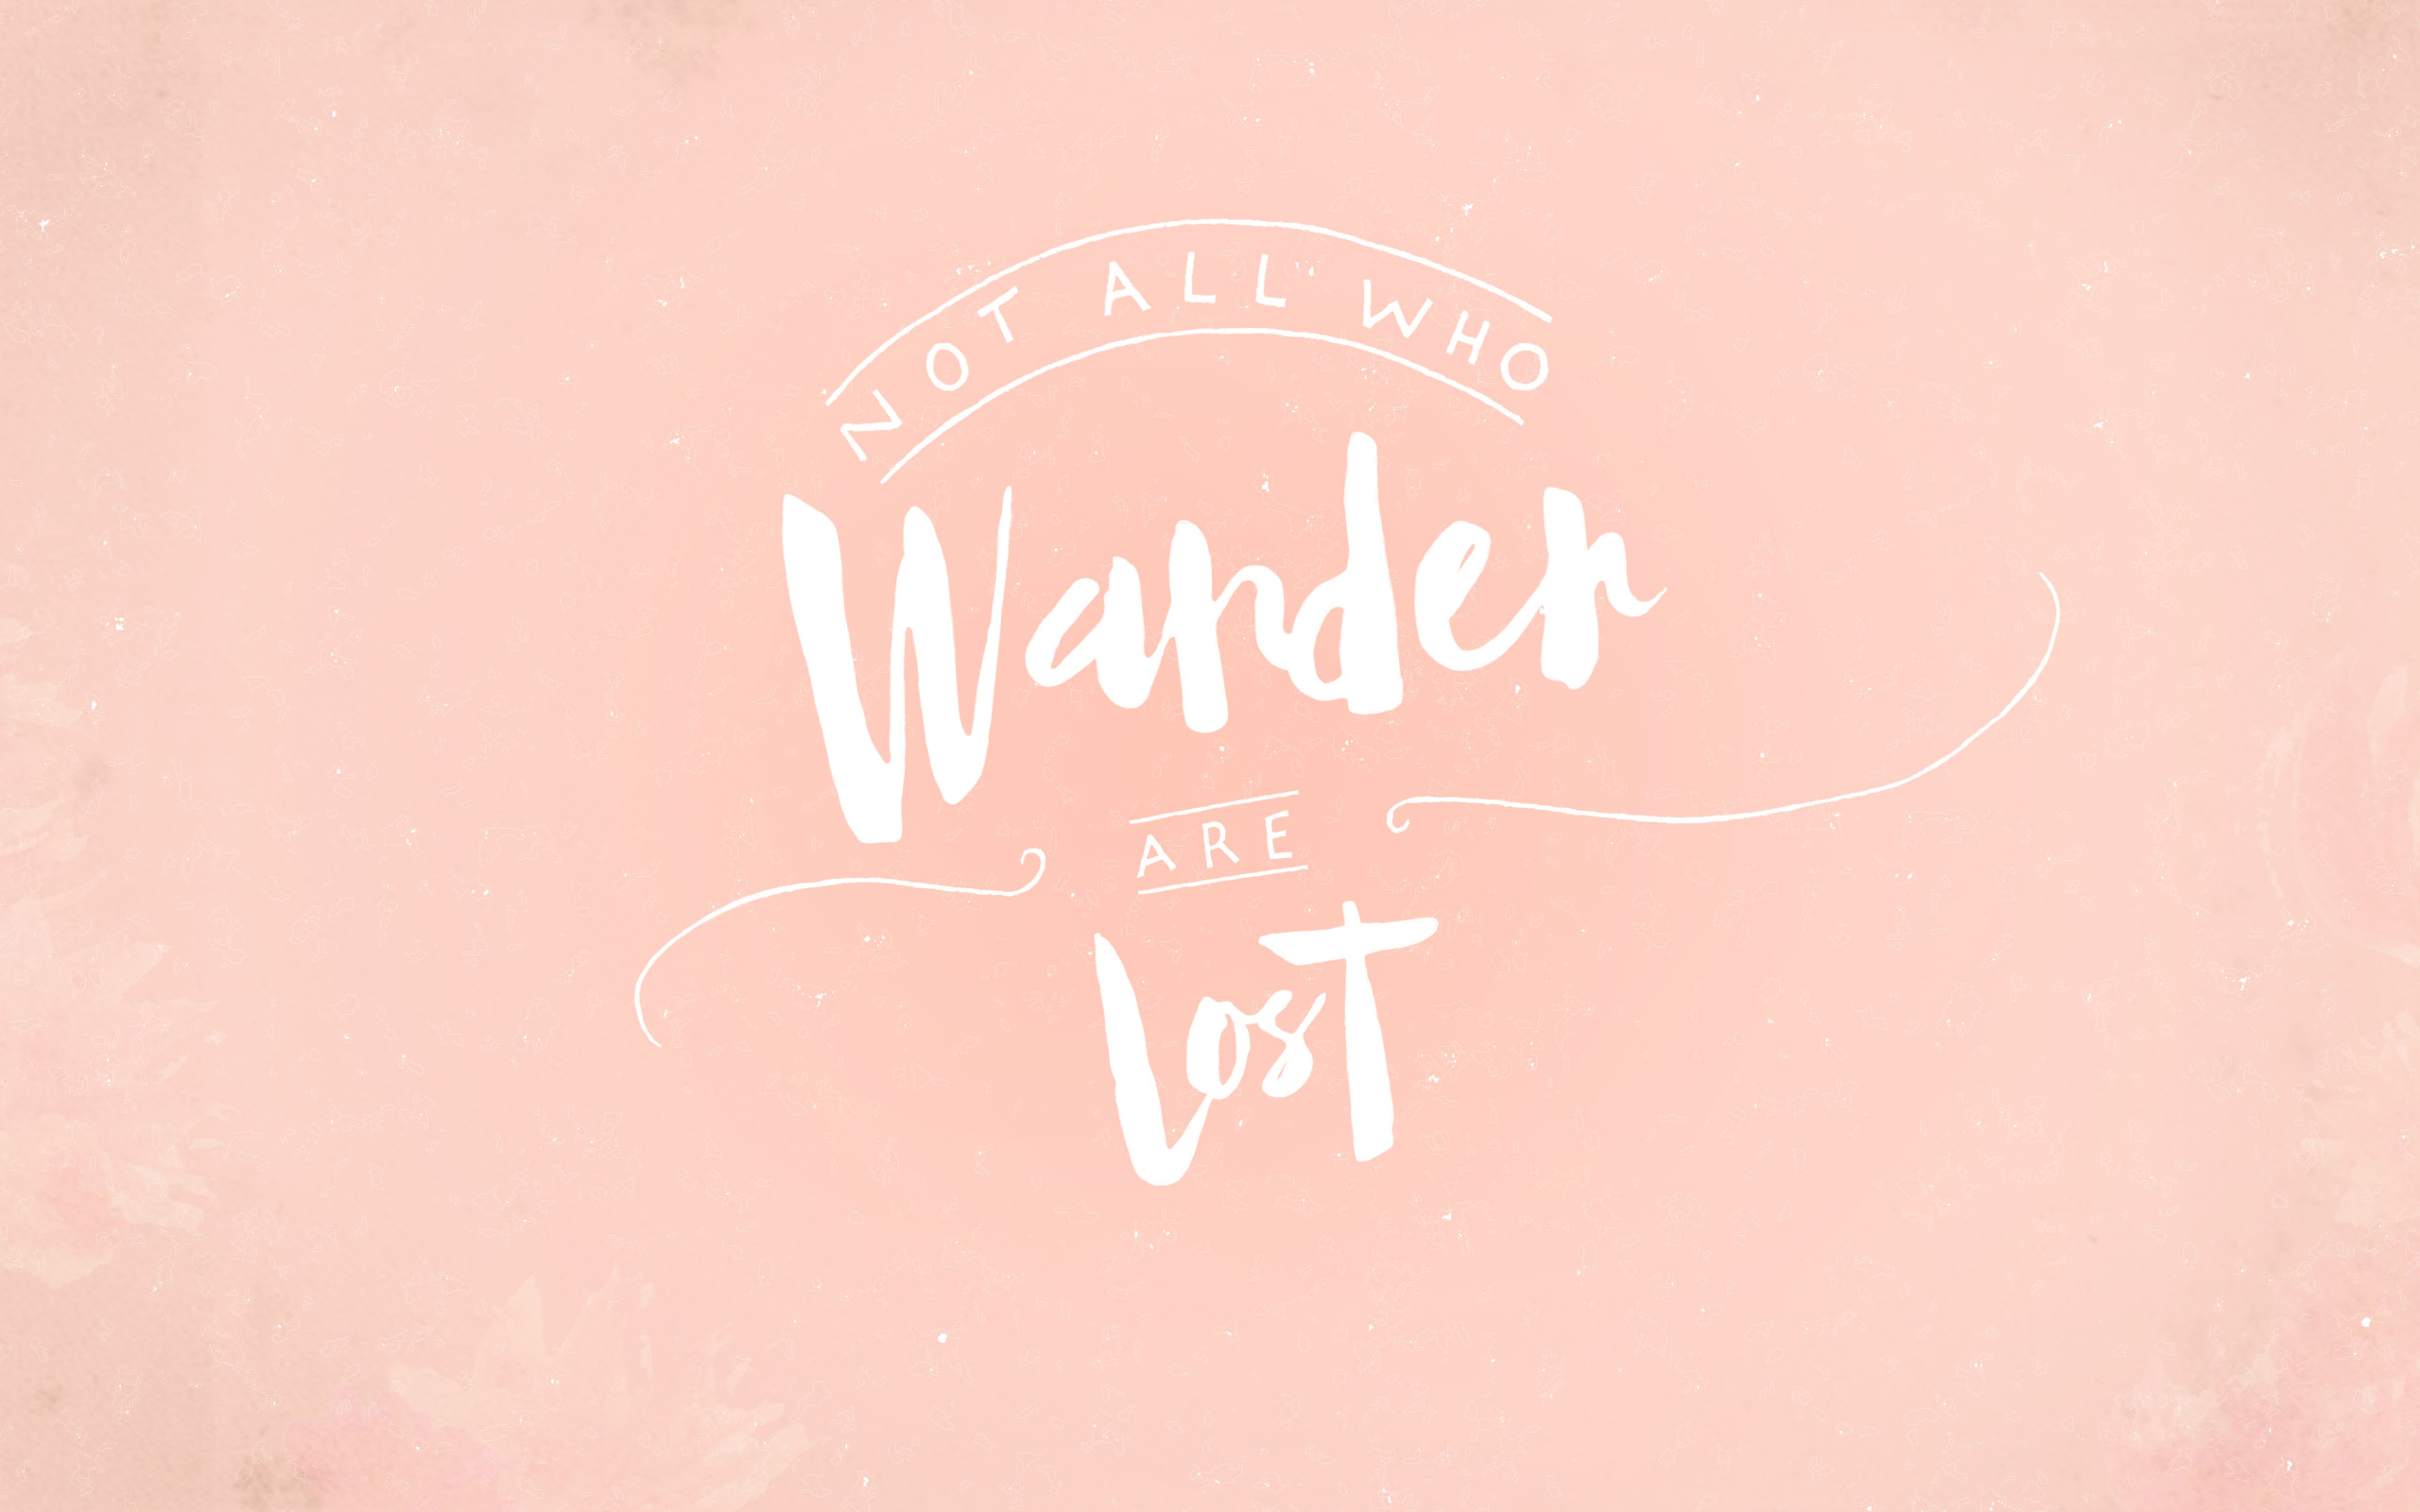 Girl Boss Quotes Wallpaper For Phone Celebrate The Summer Solstice Free Downloadable Wallpapers